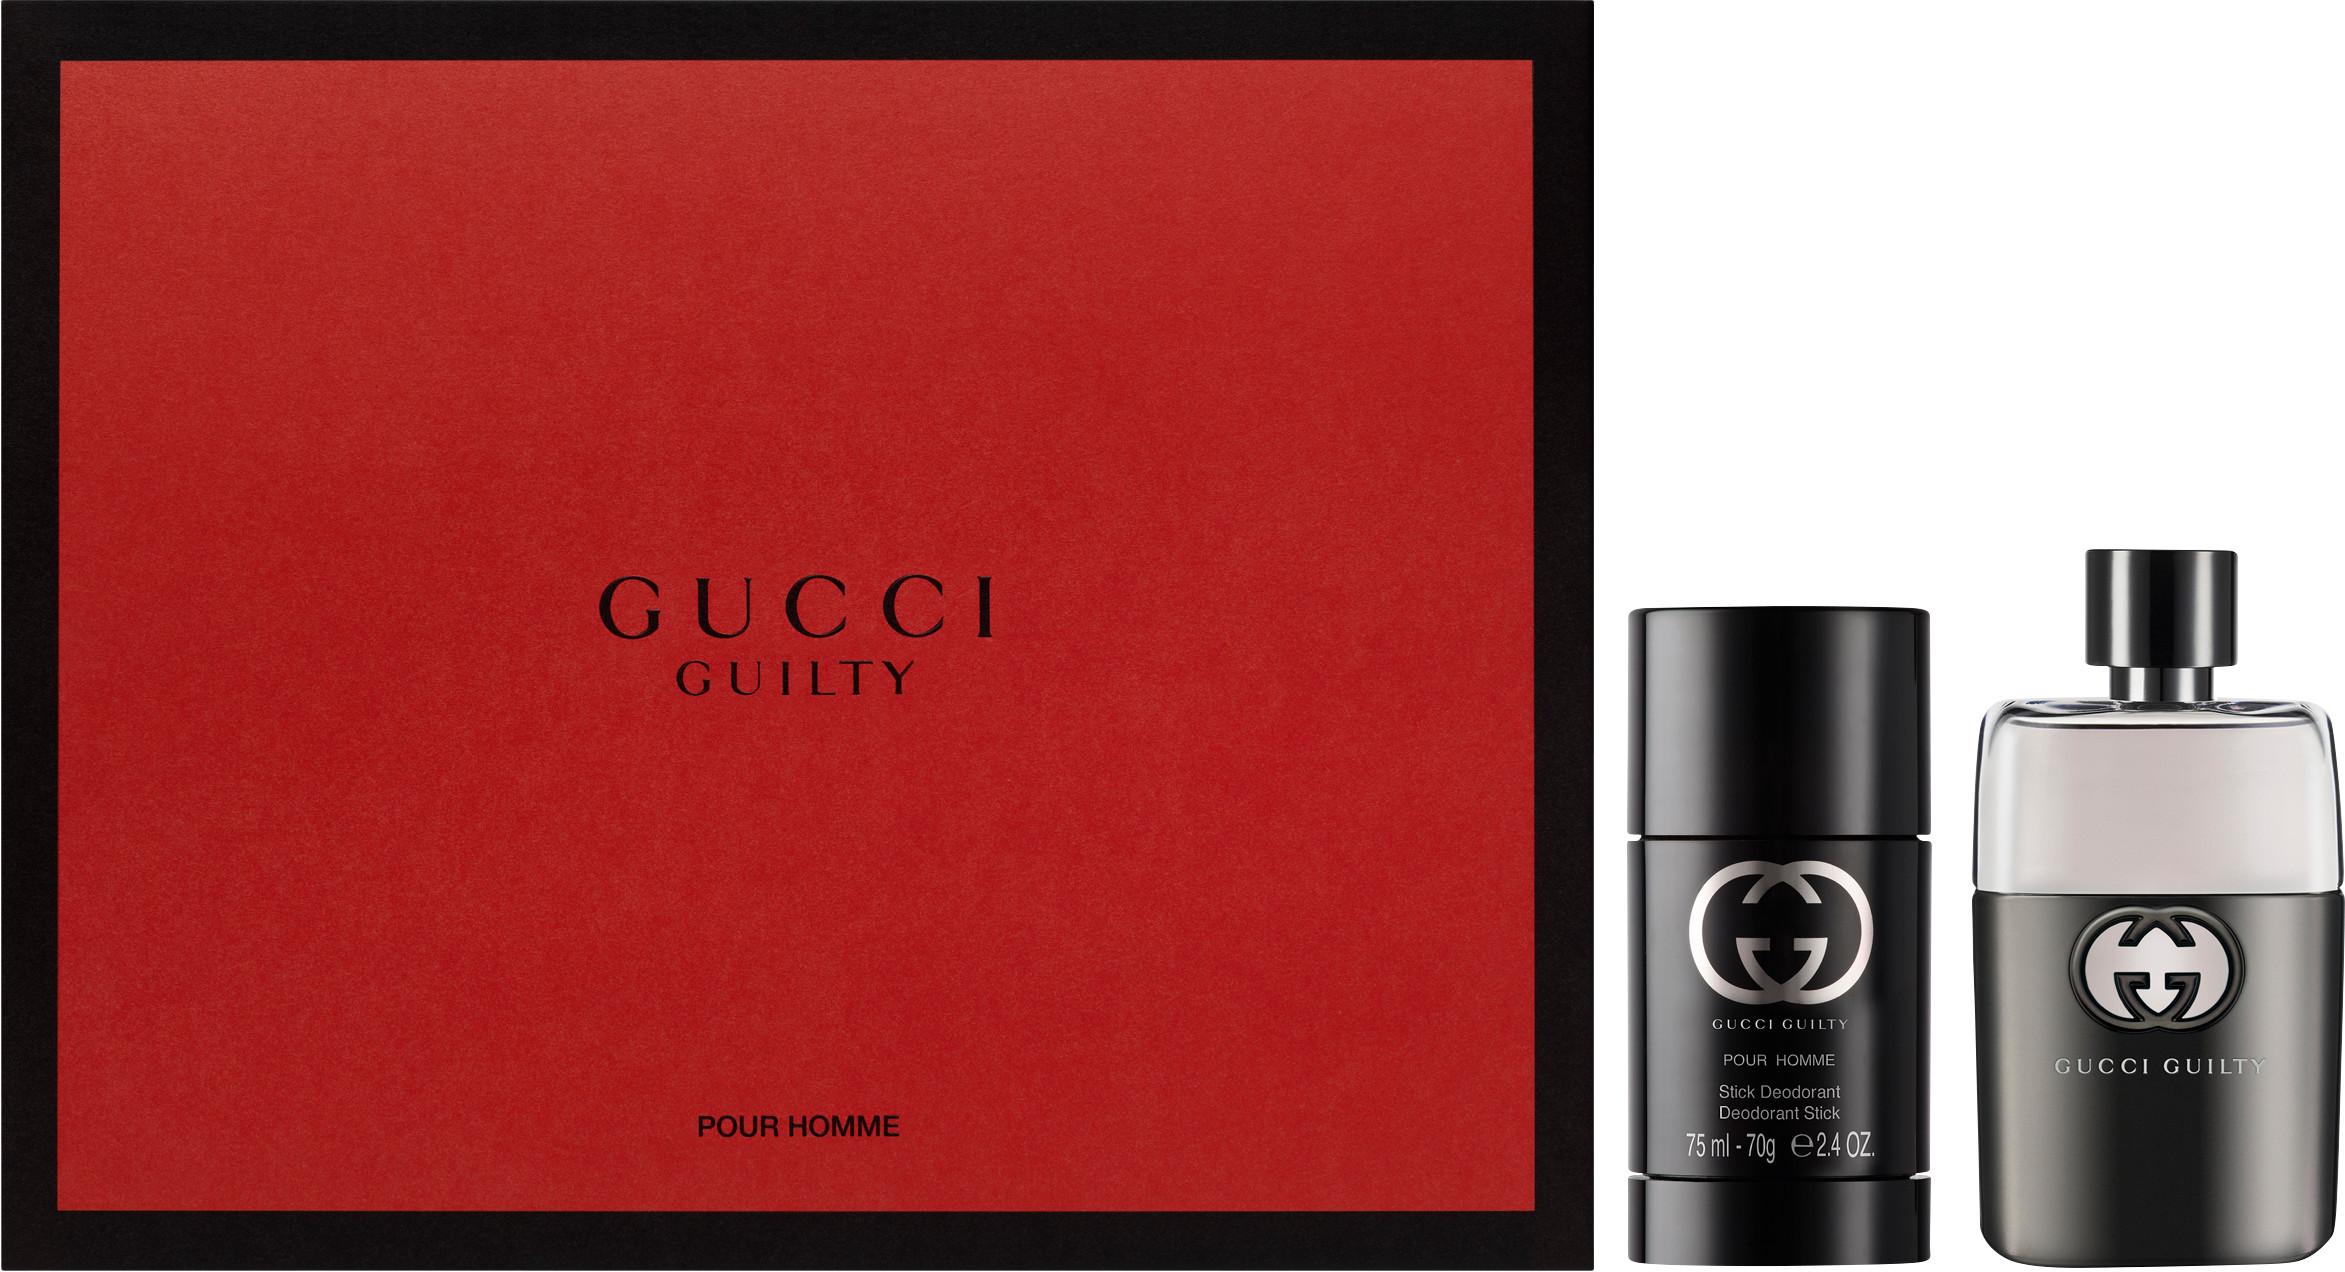 Gucci Guilty Eau De Toilette Gift Set